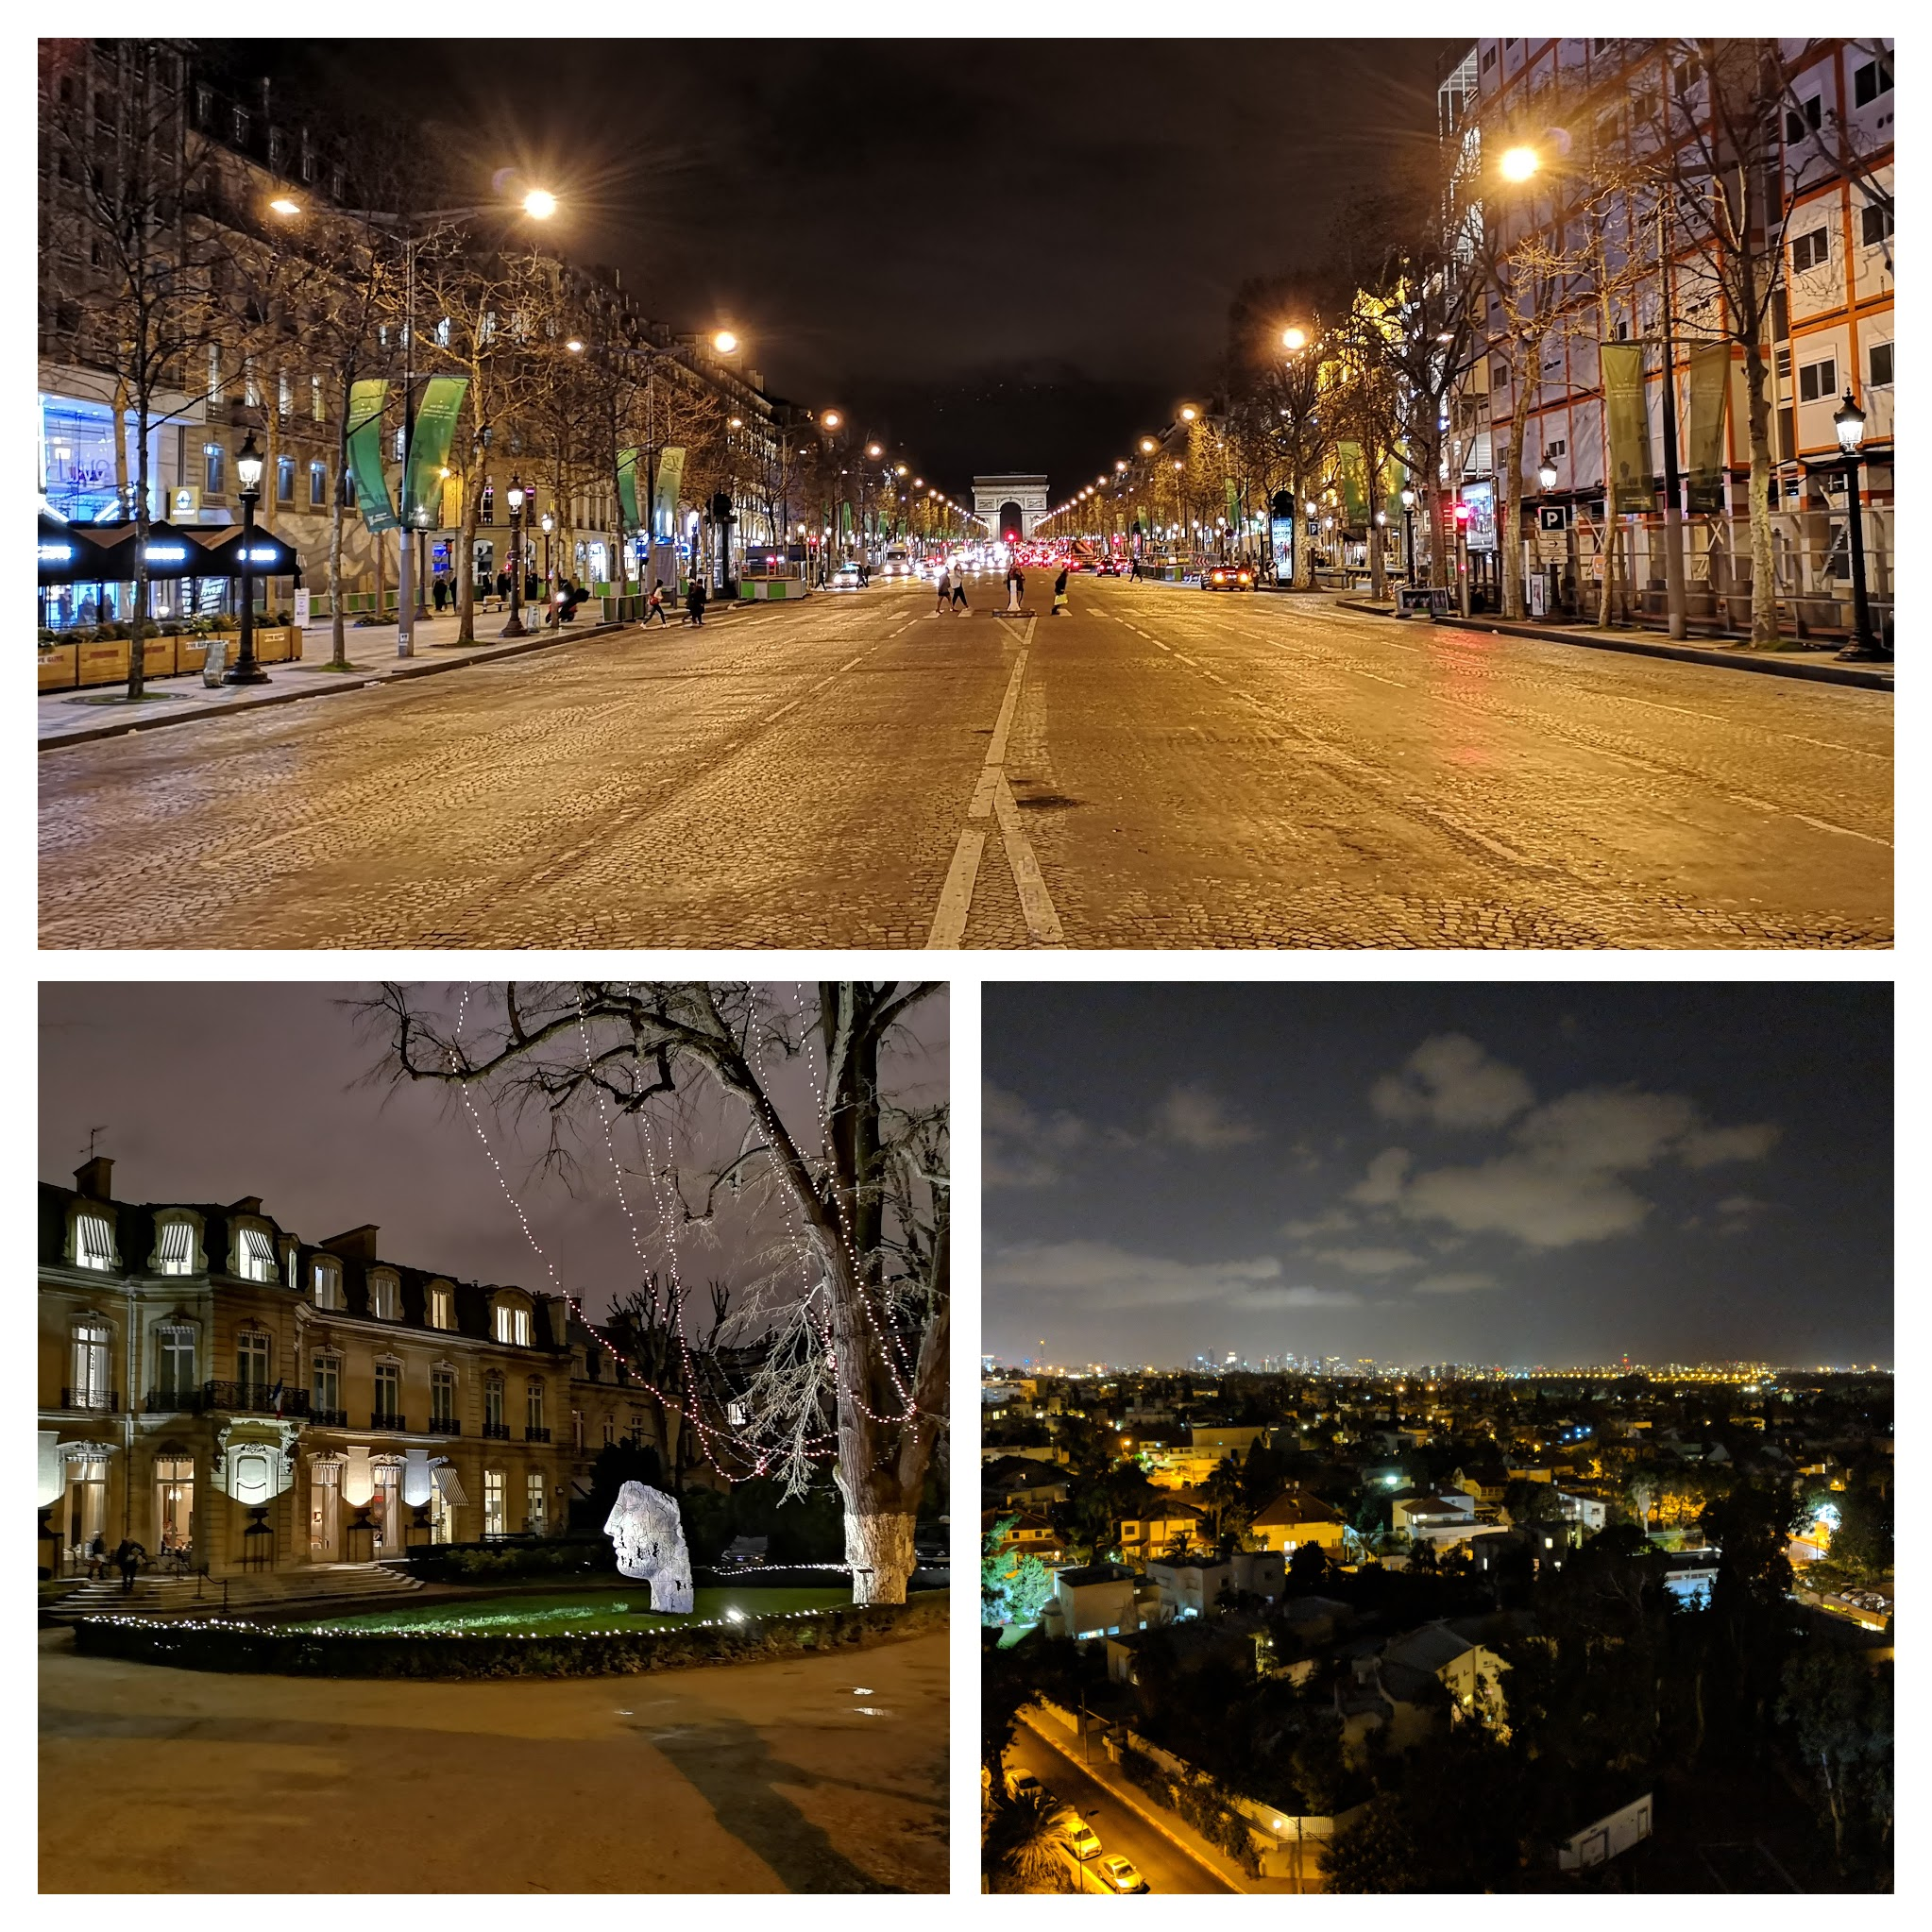 Huawei P20 Pro Night Shots